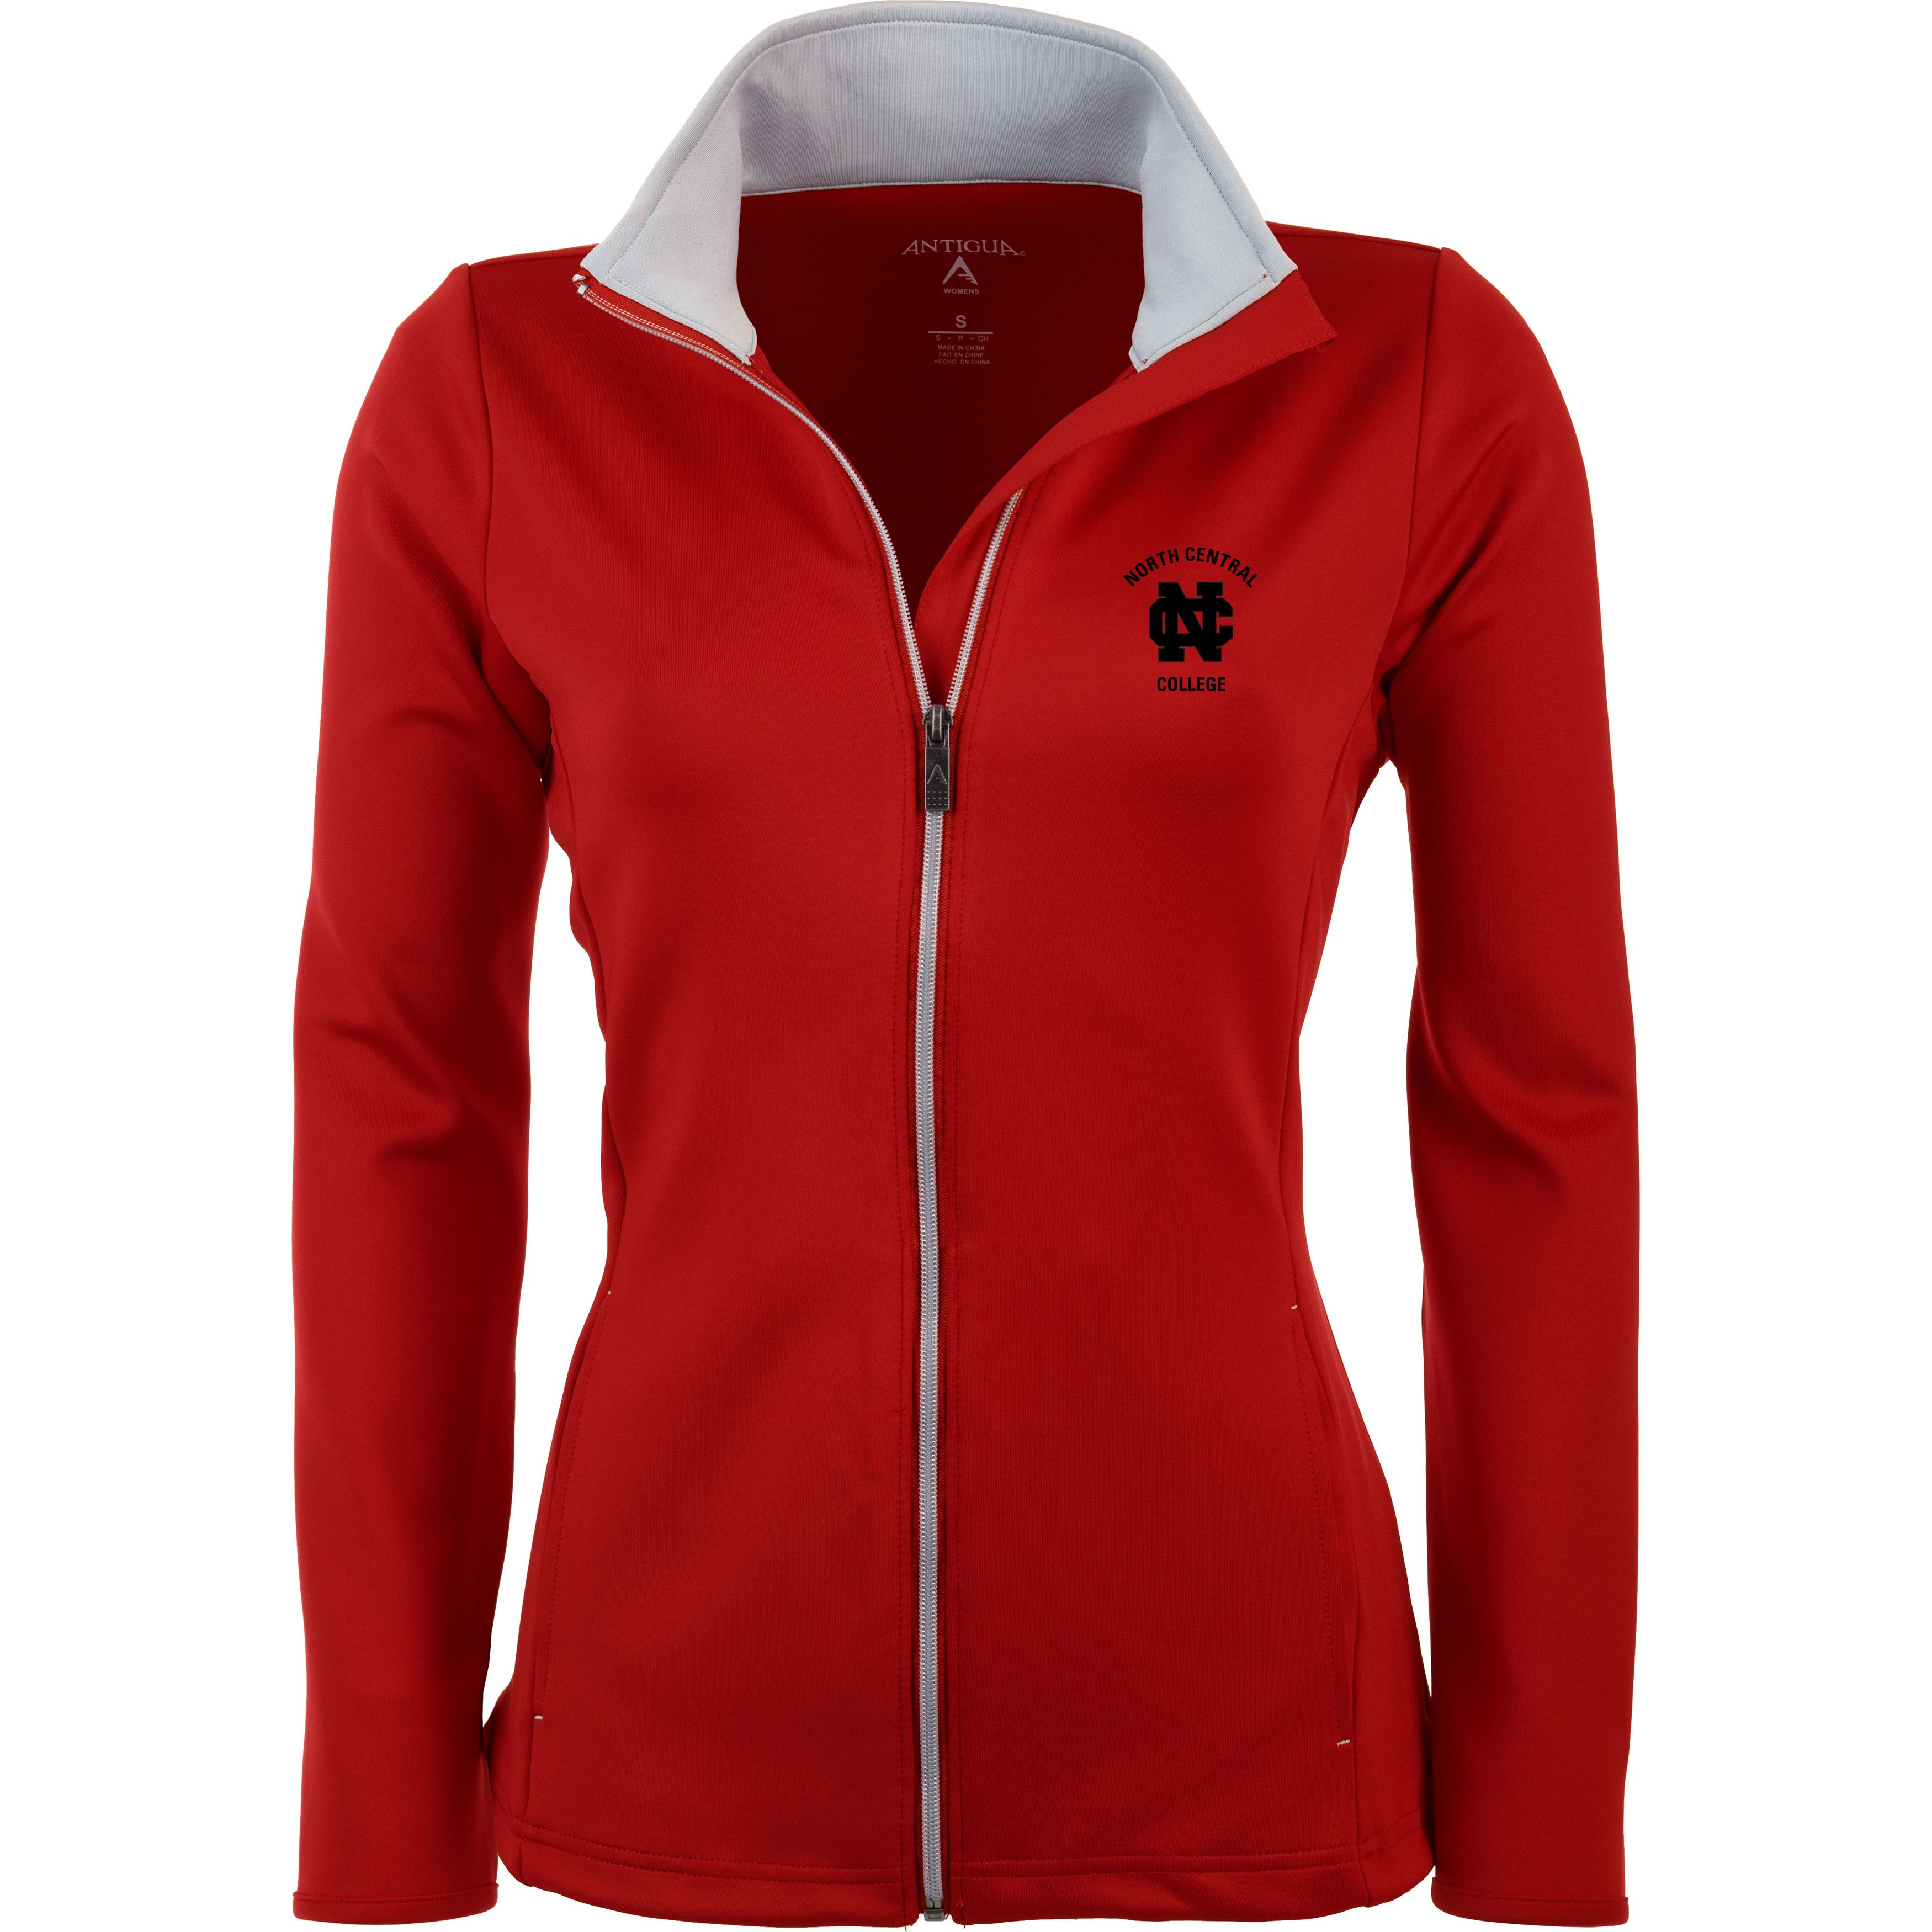 Image for the Women's Leader Jacket product